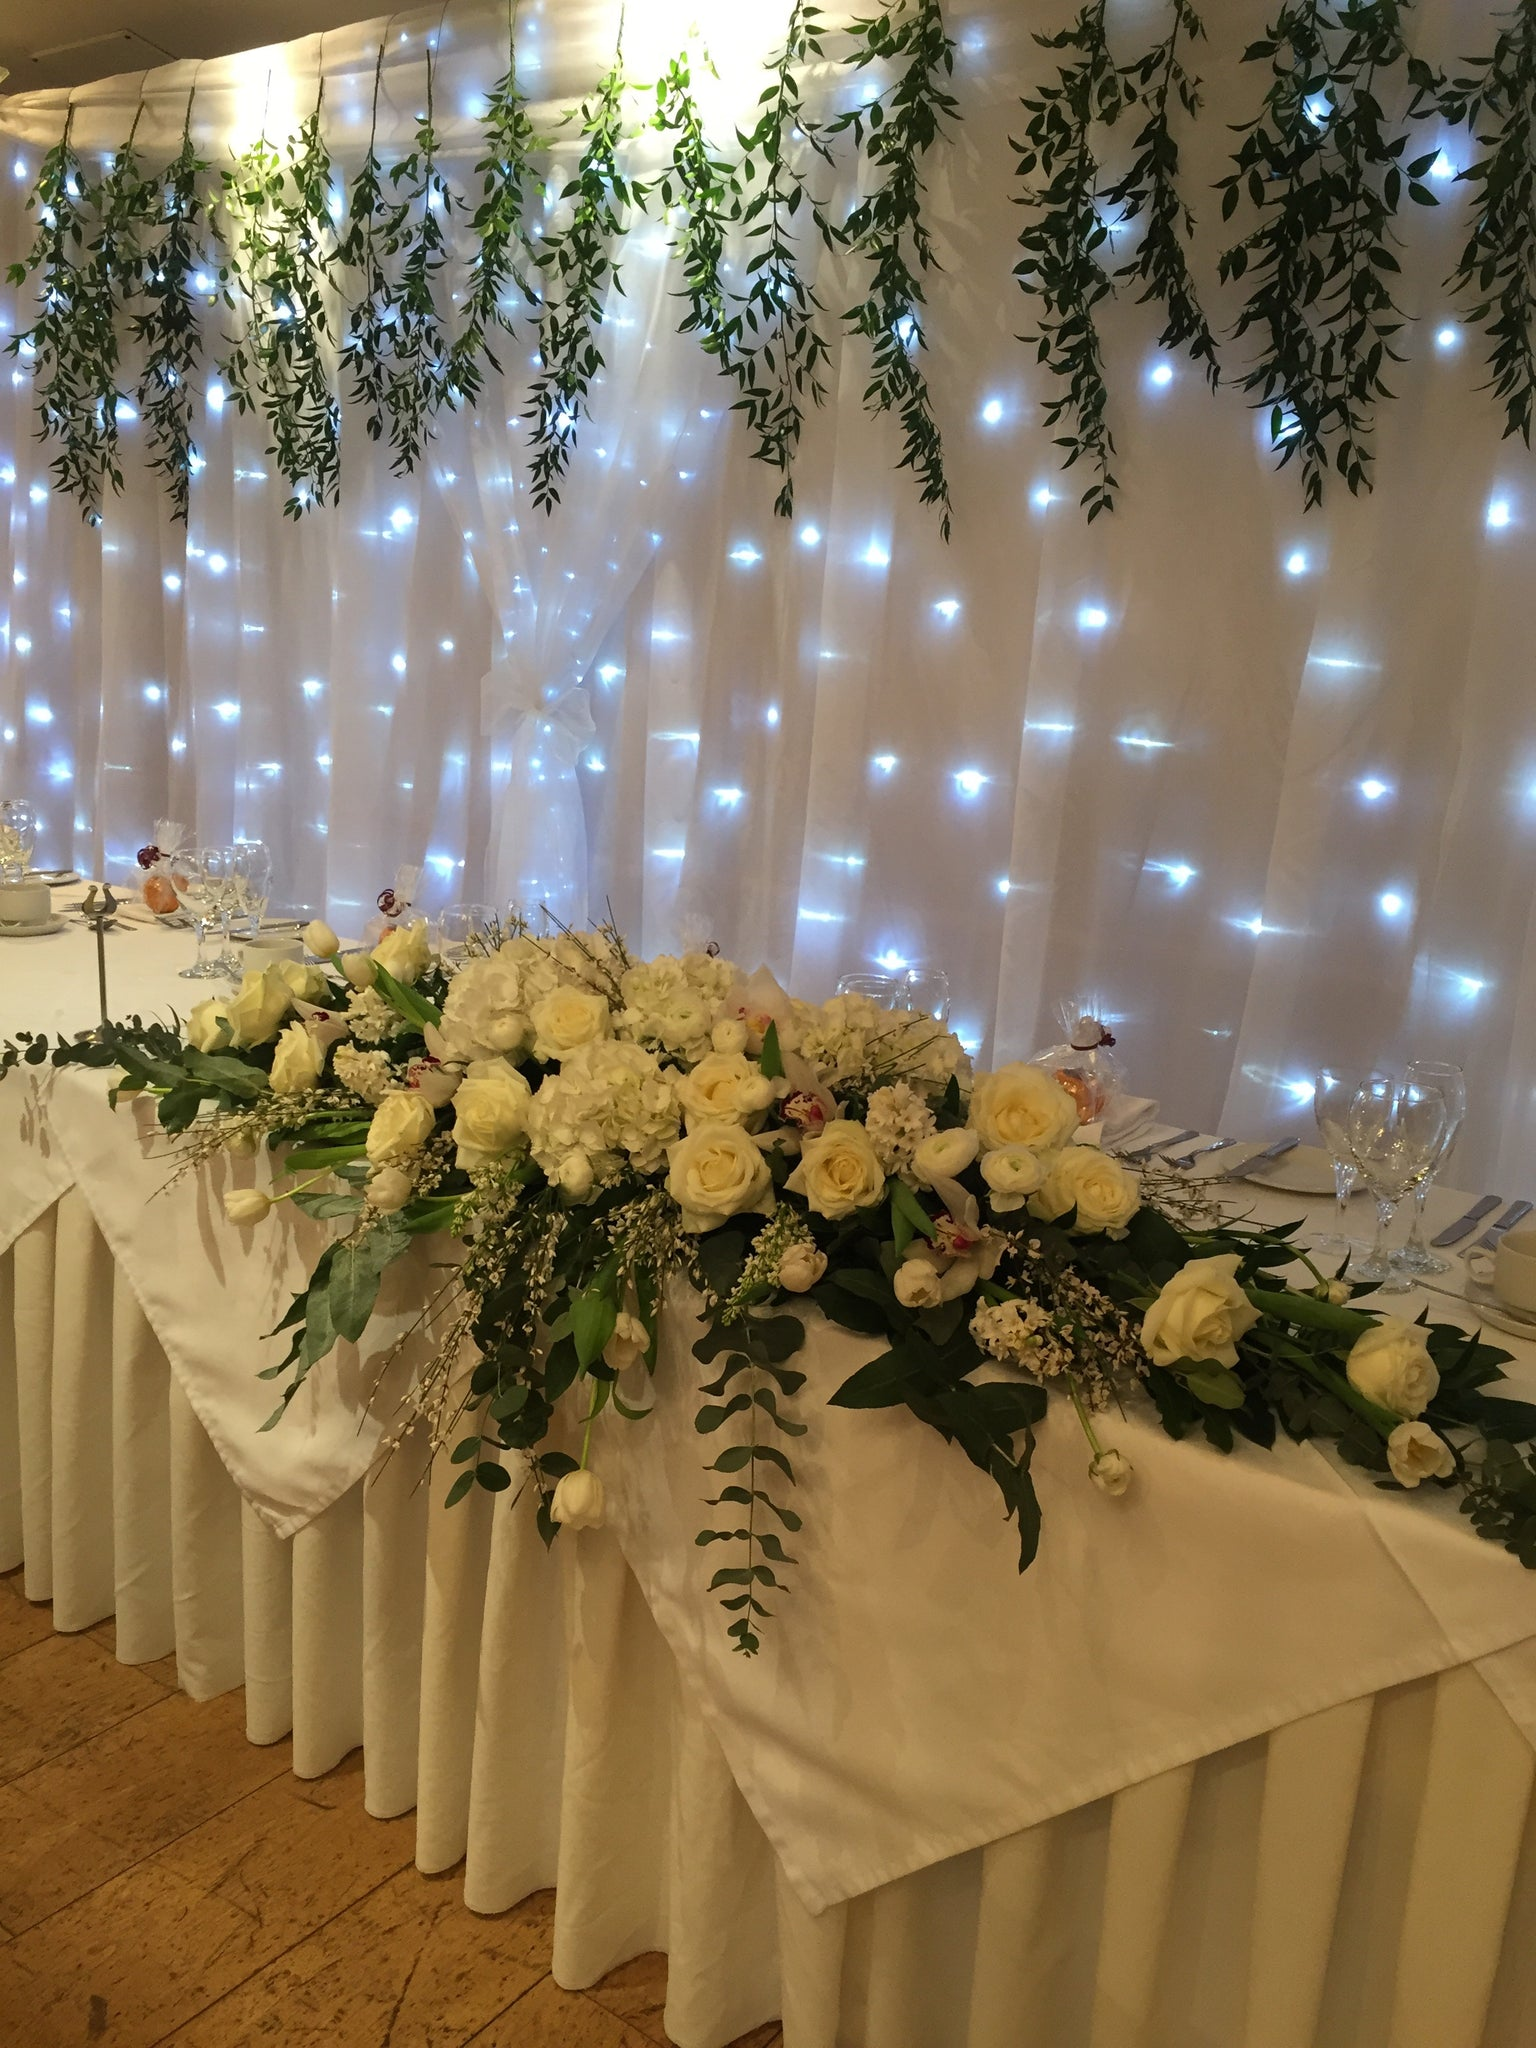 34.Wedding Top table Arrangement